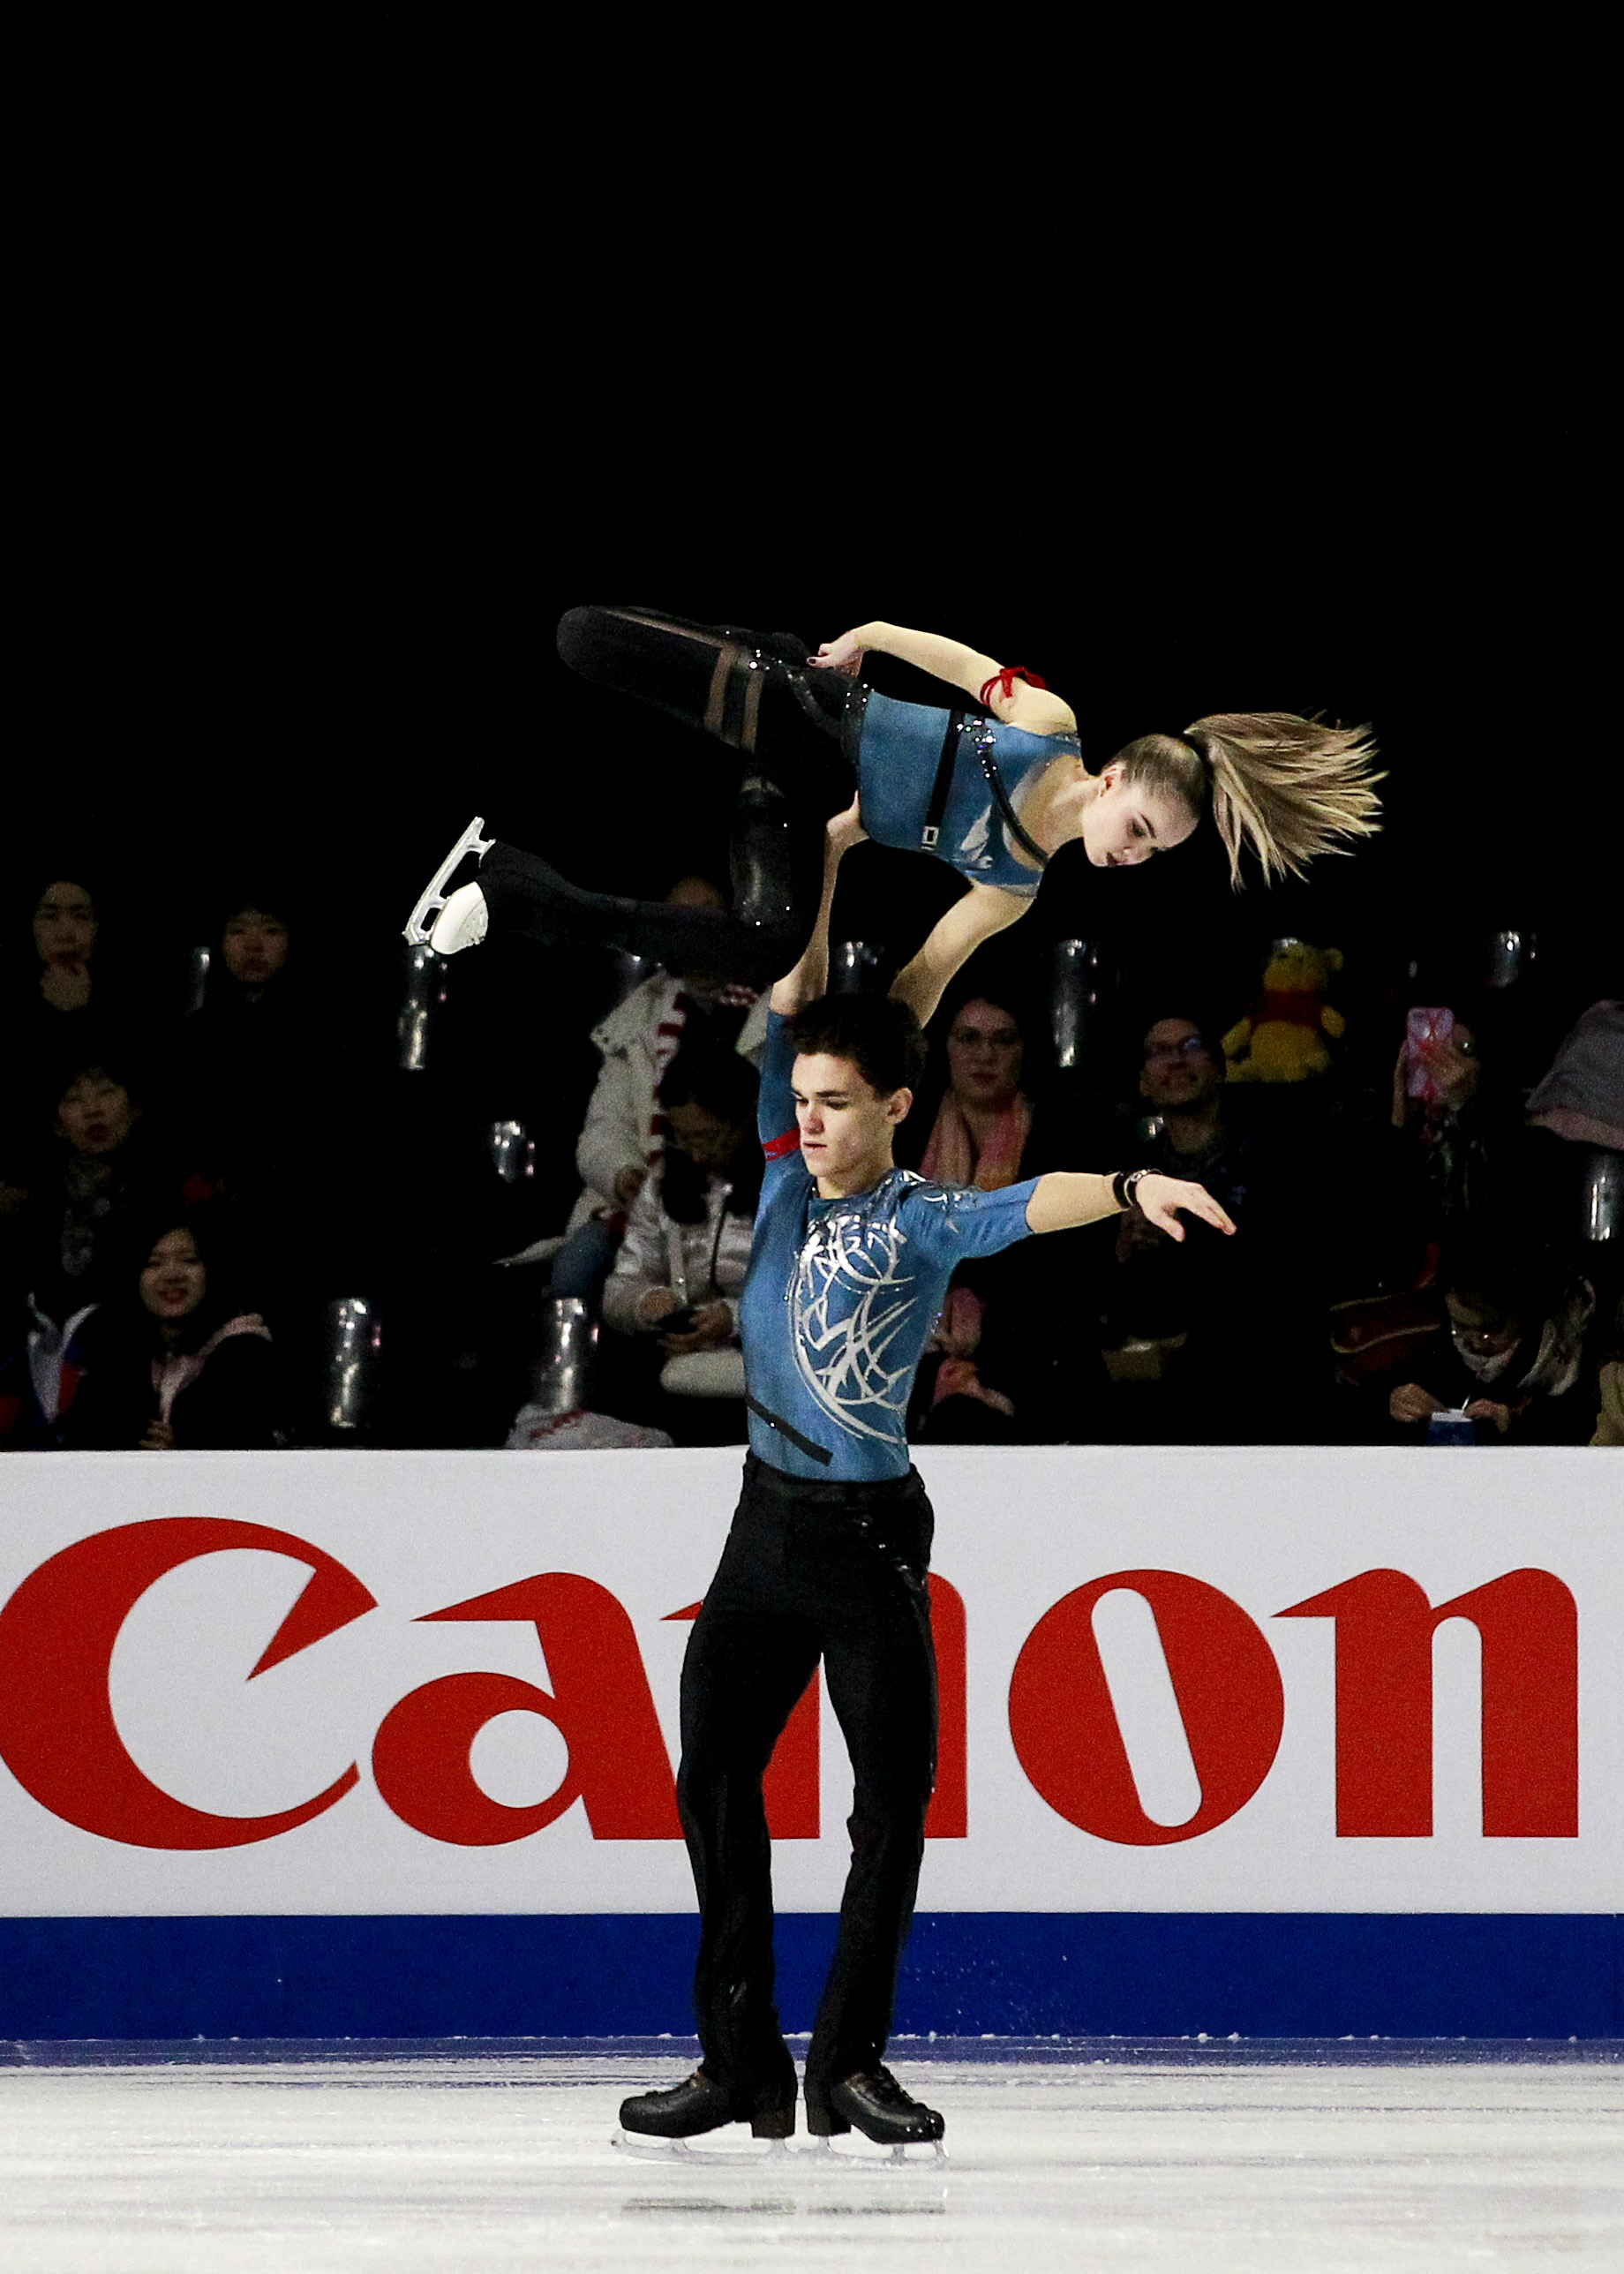 Junior pair Polina Kostiukovich and Dmitrii Ialin of Russia.